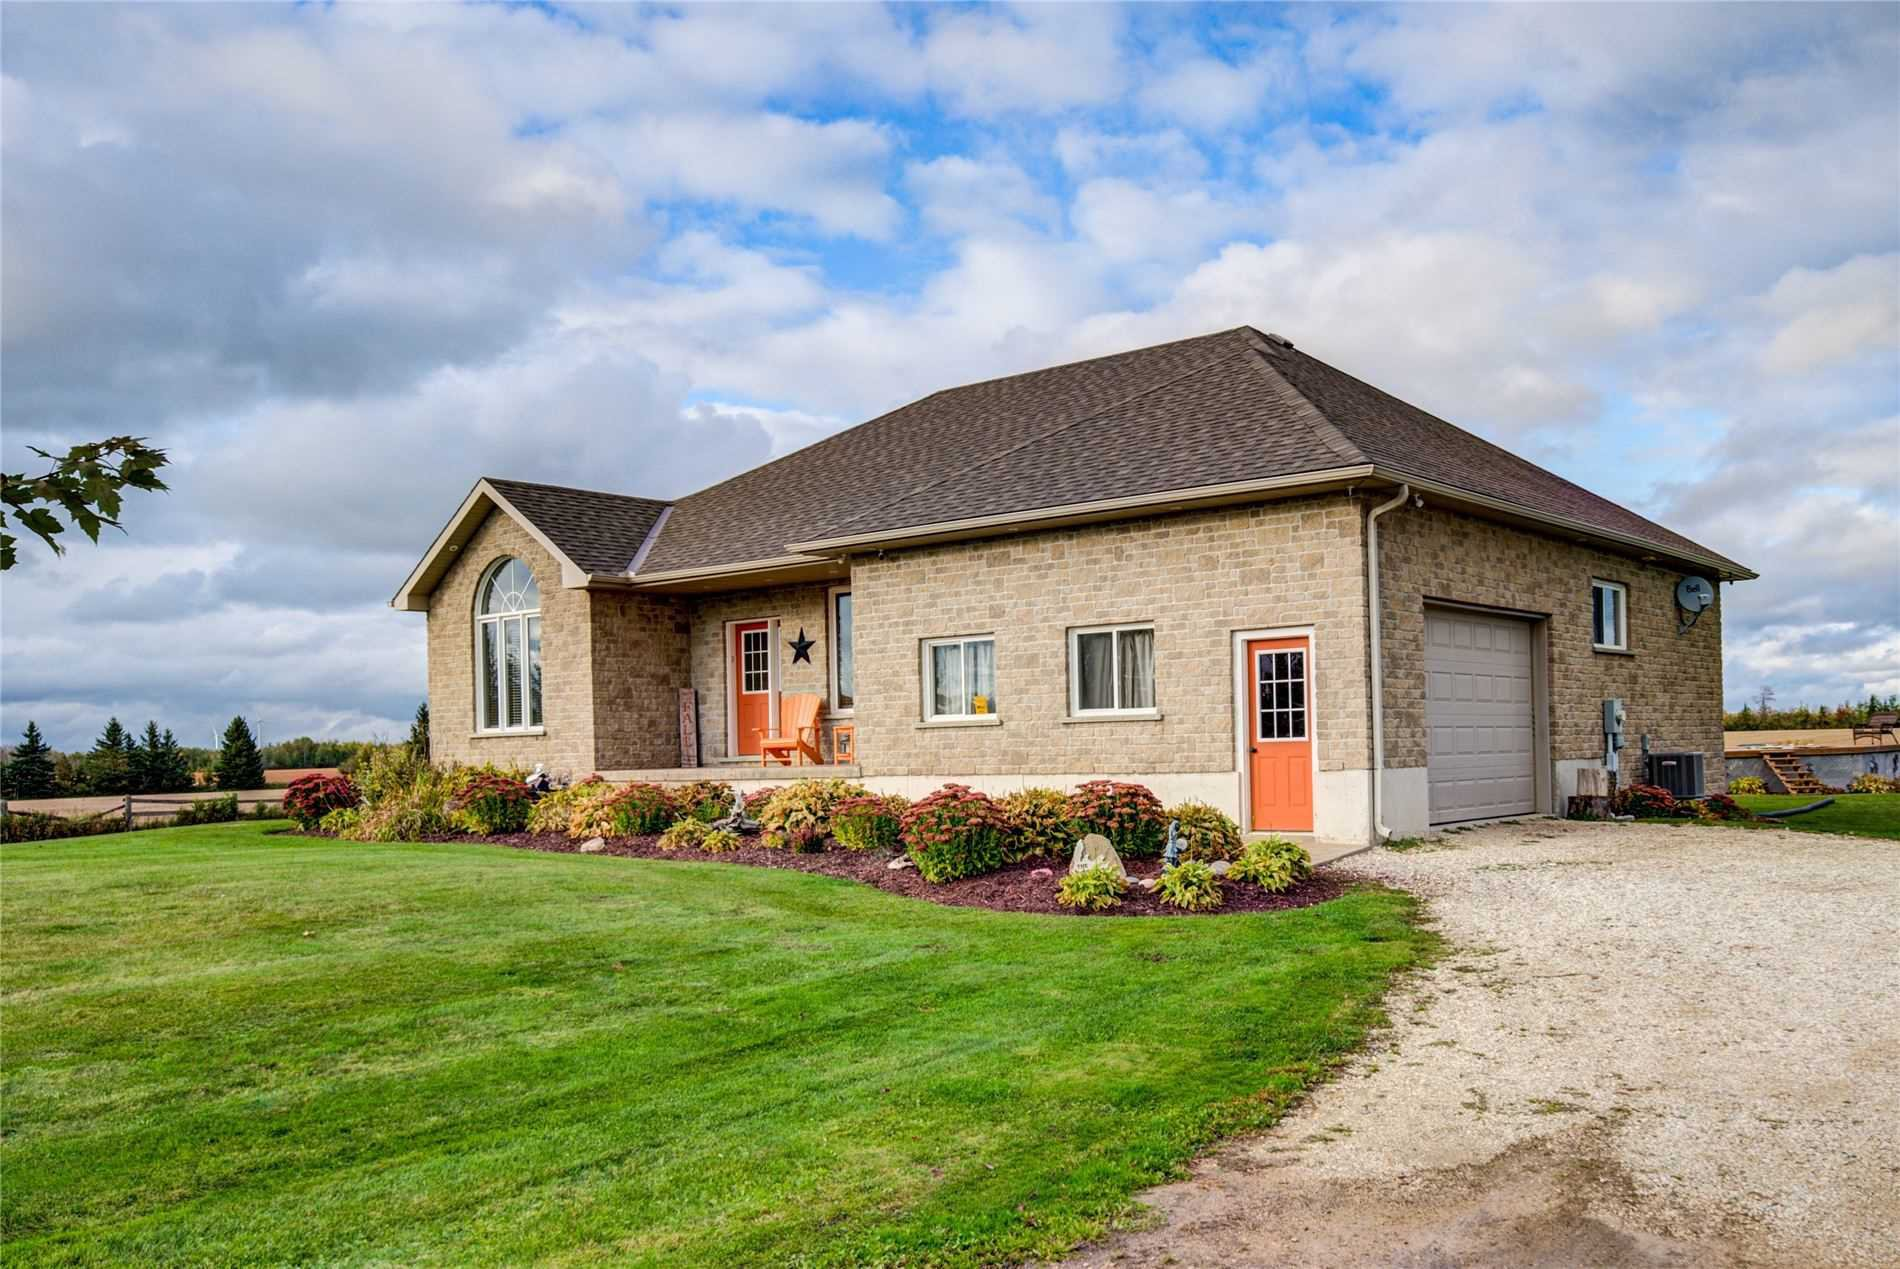 Main Photo: 097427 4th Line Sw in Melancthon: Rural Melancthon House (Bungalow) for sale : MLS®# X4939642